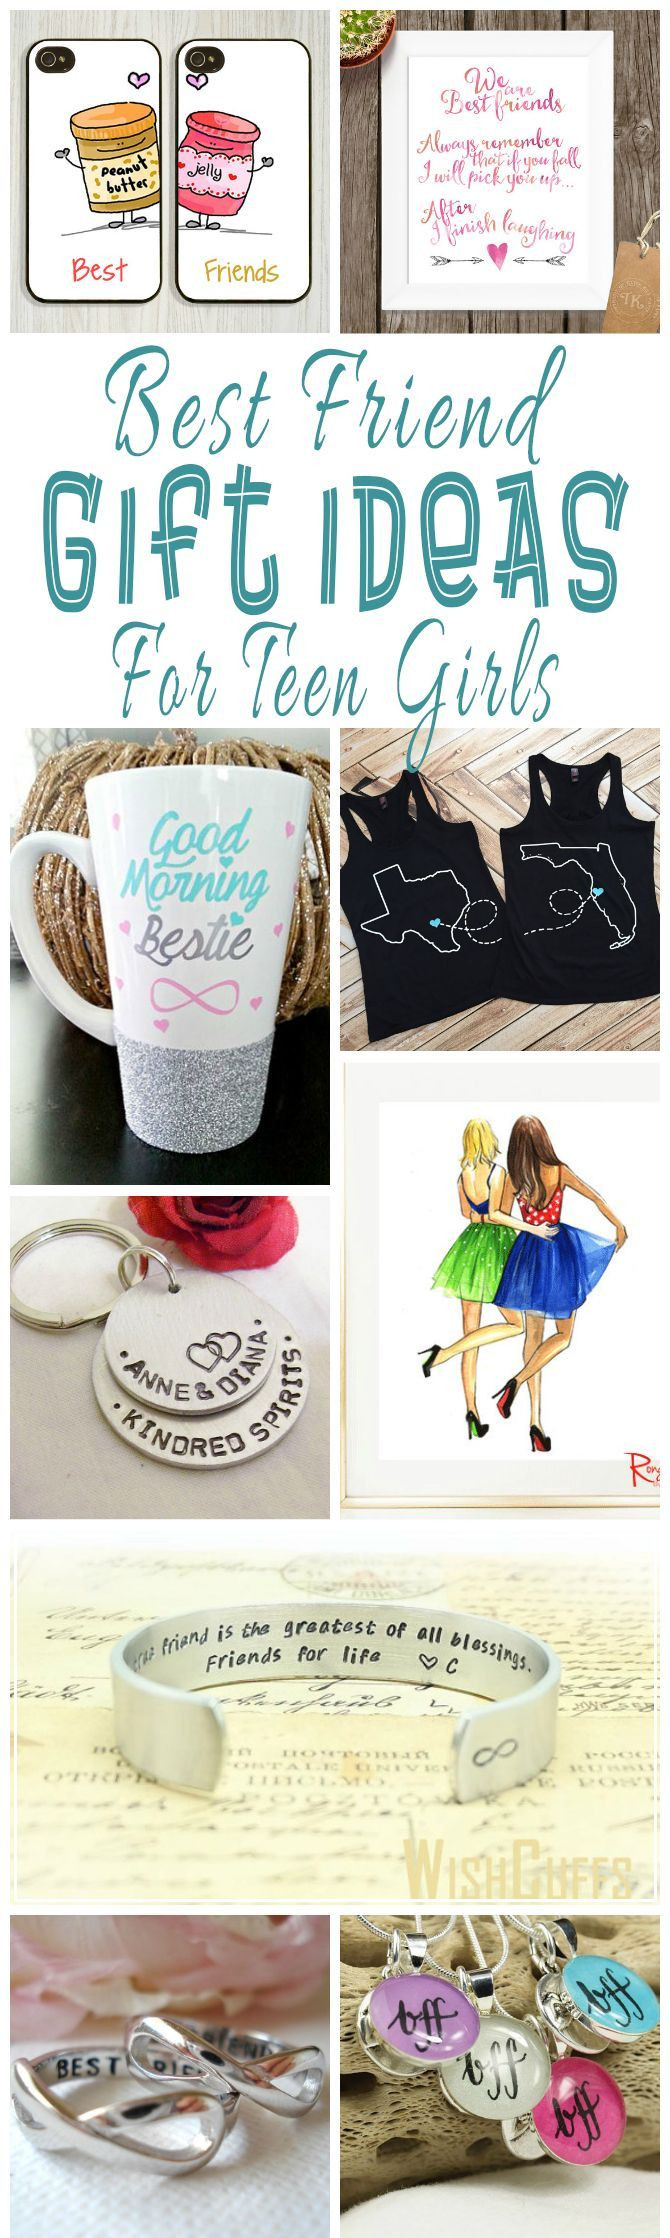 Unique Gift Ideas For Best Friend  Best Friend Gift Ideas For Teens